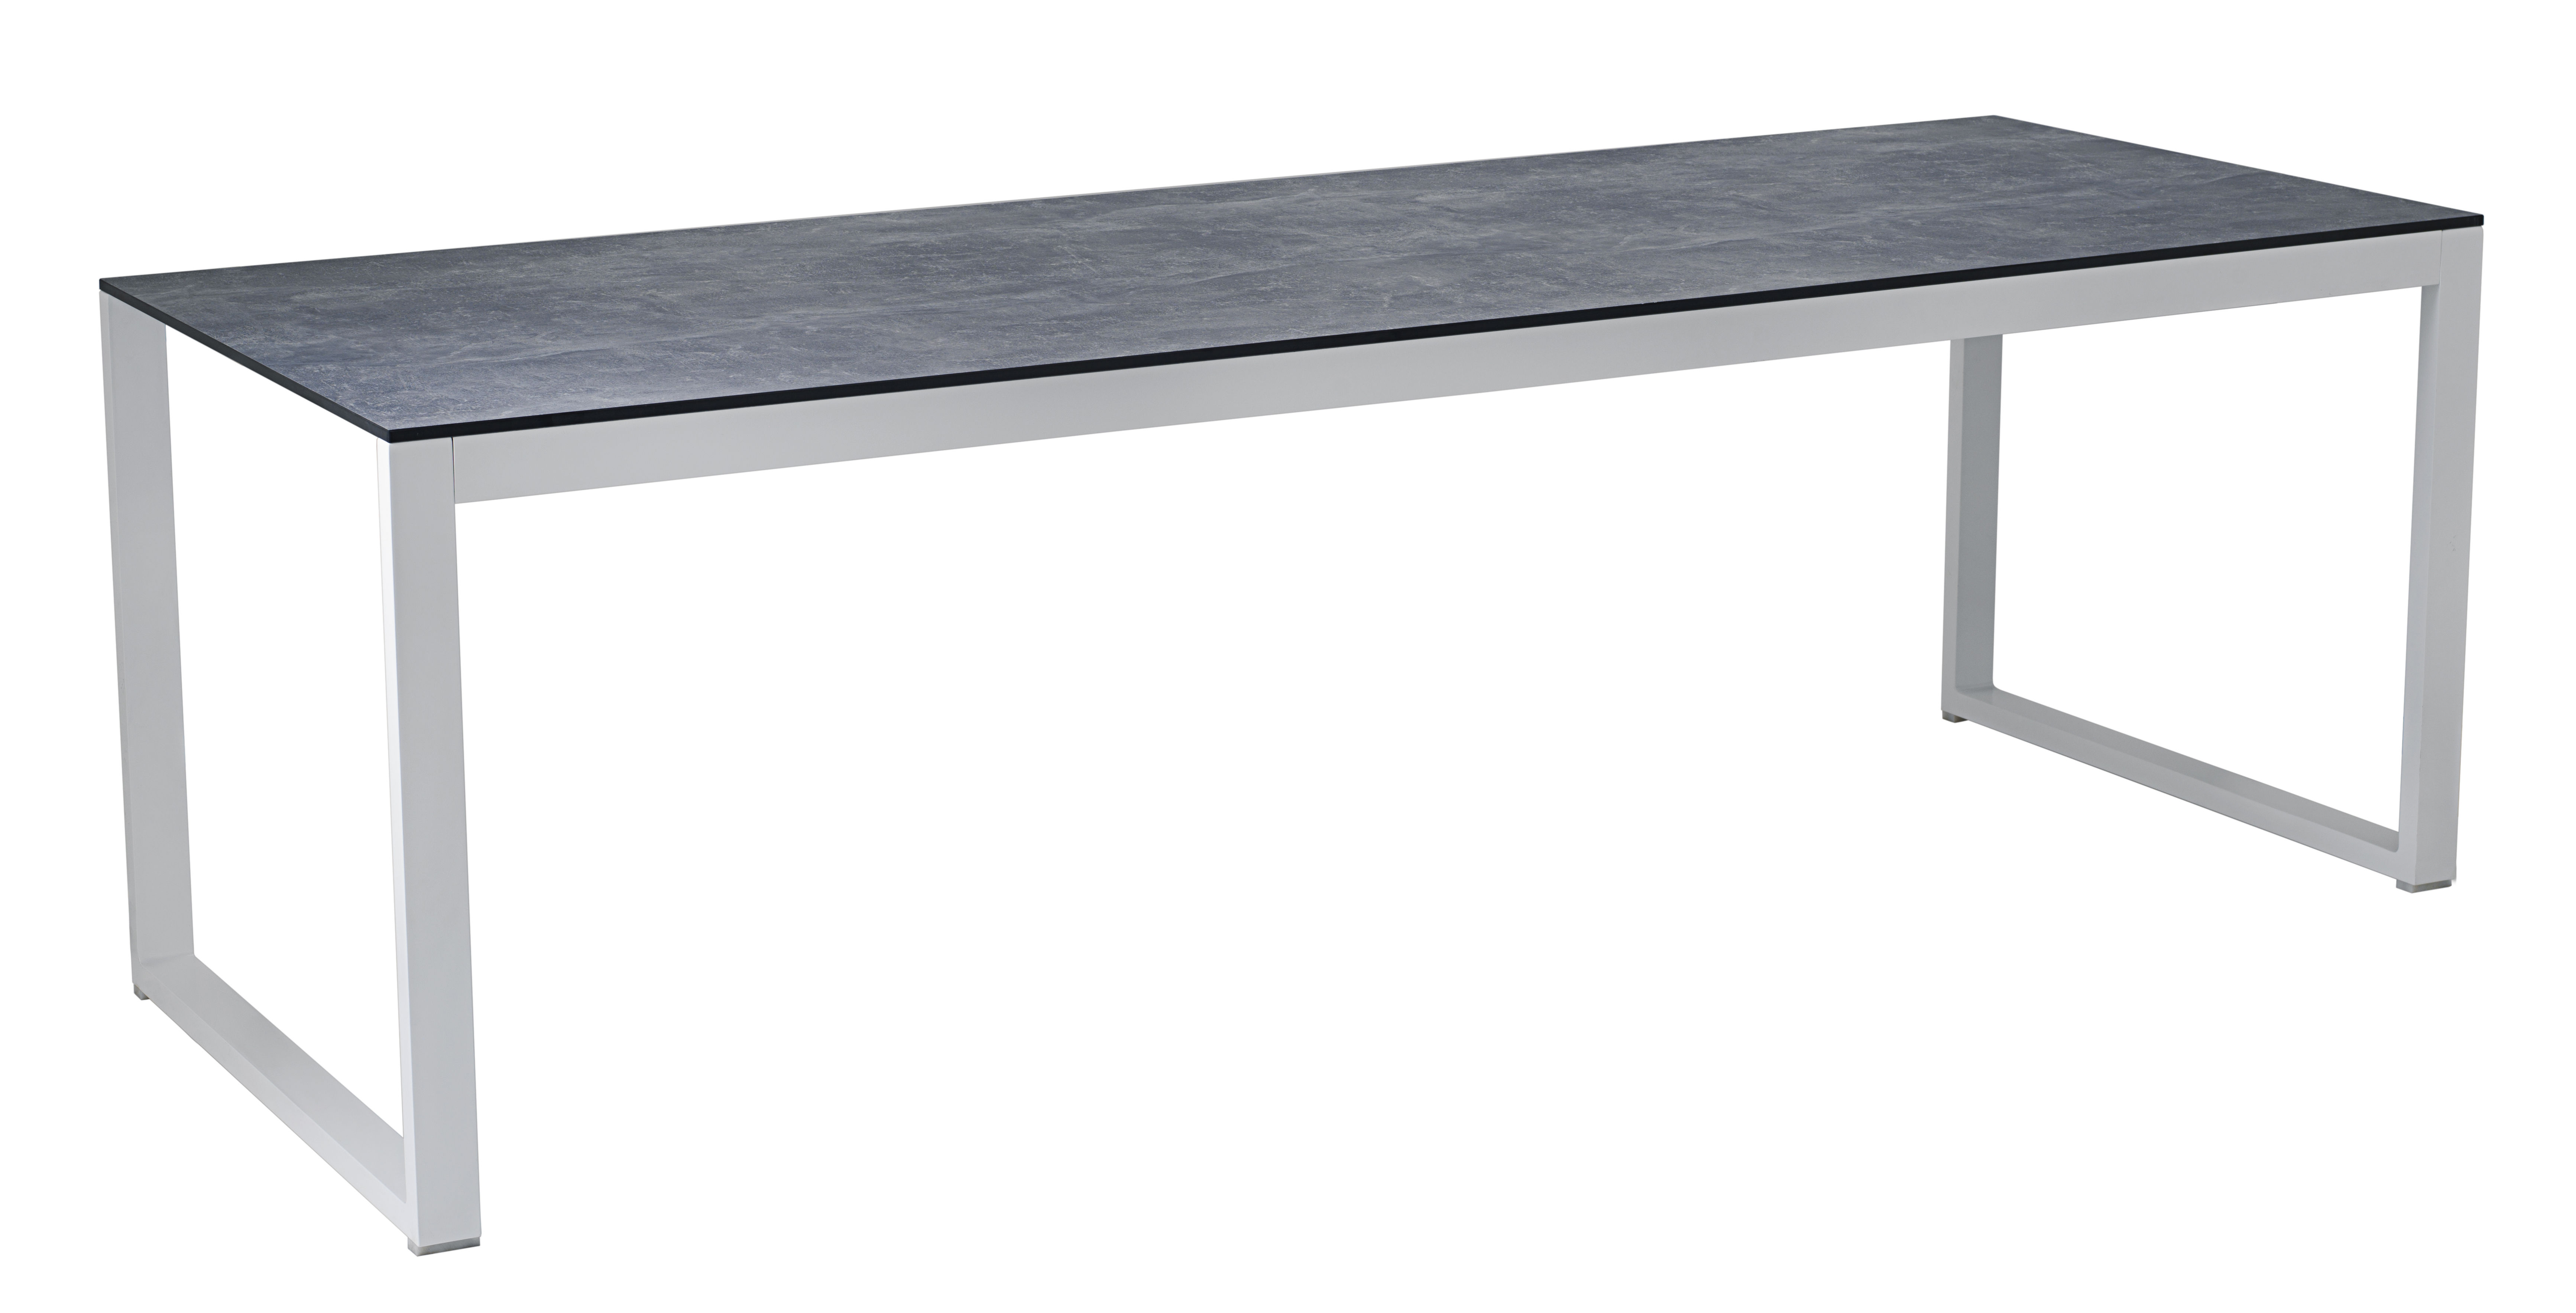 Outdoor - Garden Tables - Perspective Rectangular table - 227 x 90 cm / Concrete effect by Vlaemynck - Ciment grey / White - Concrete effect HPL, Lacquered aluminium